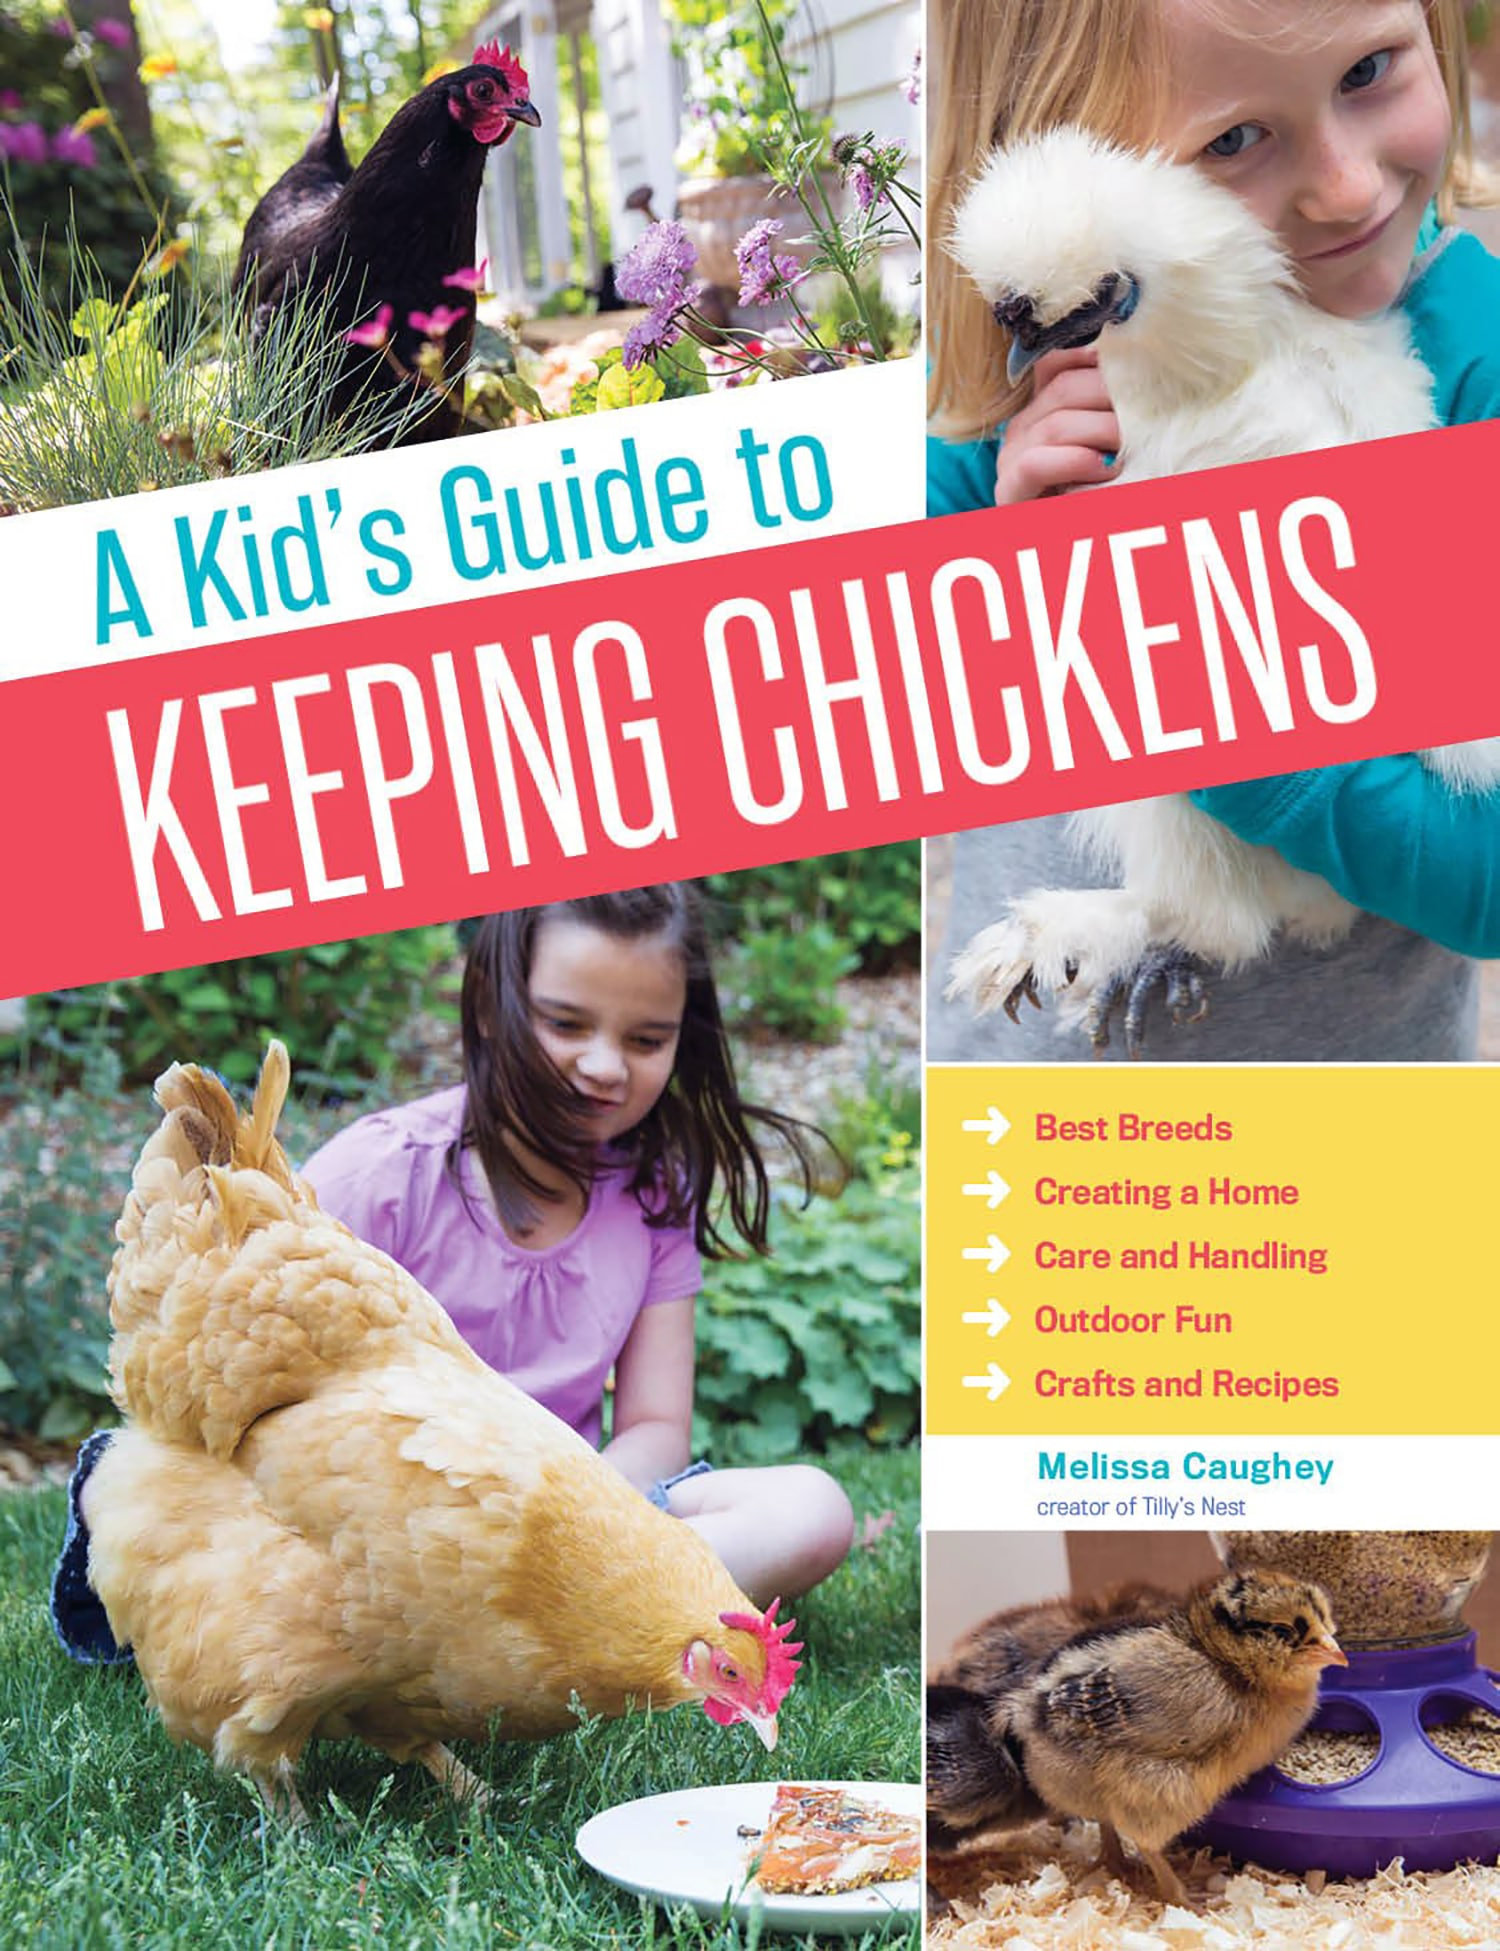 Children's books about chickens